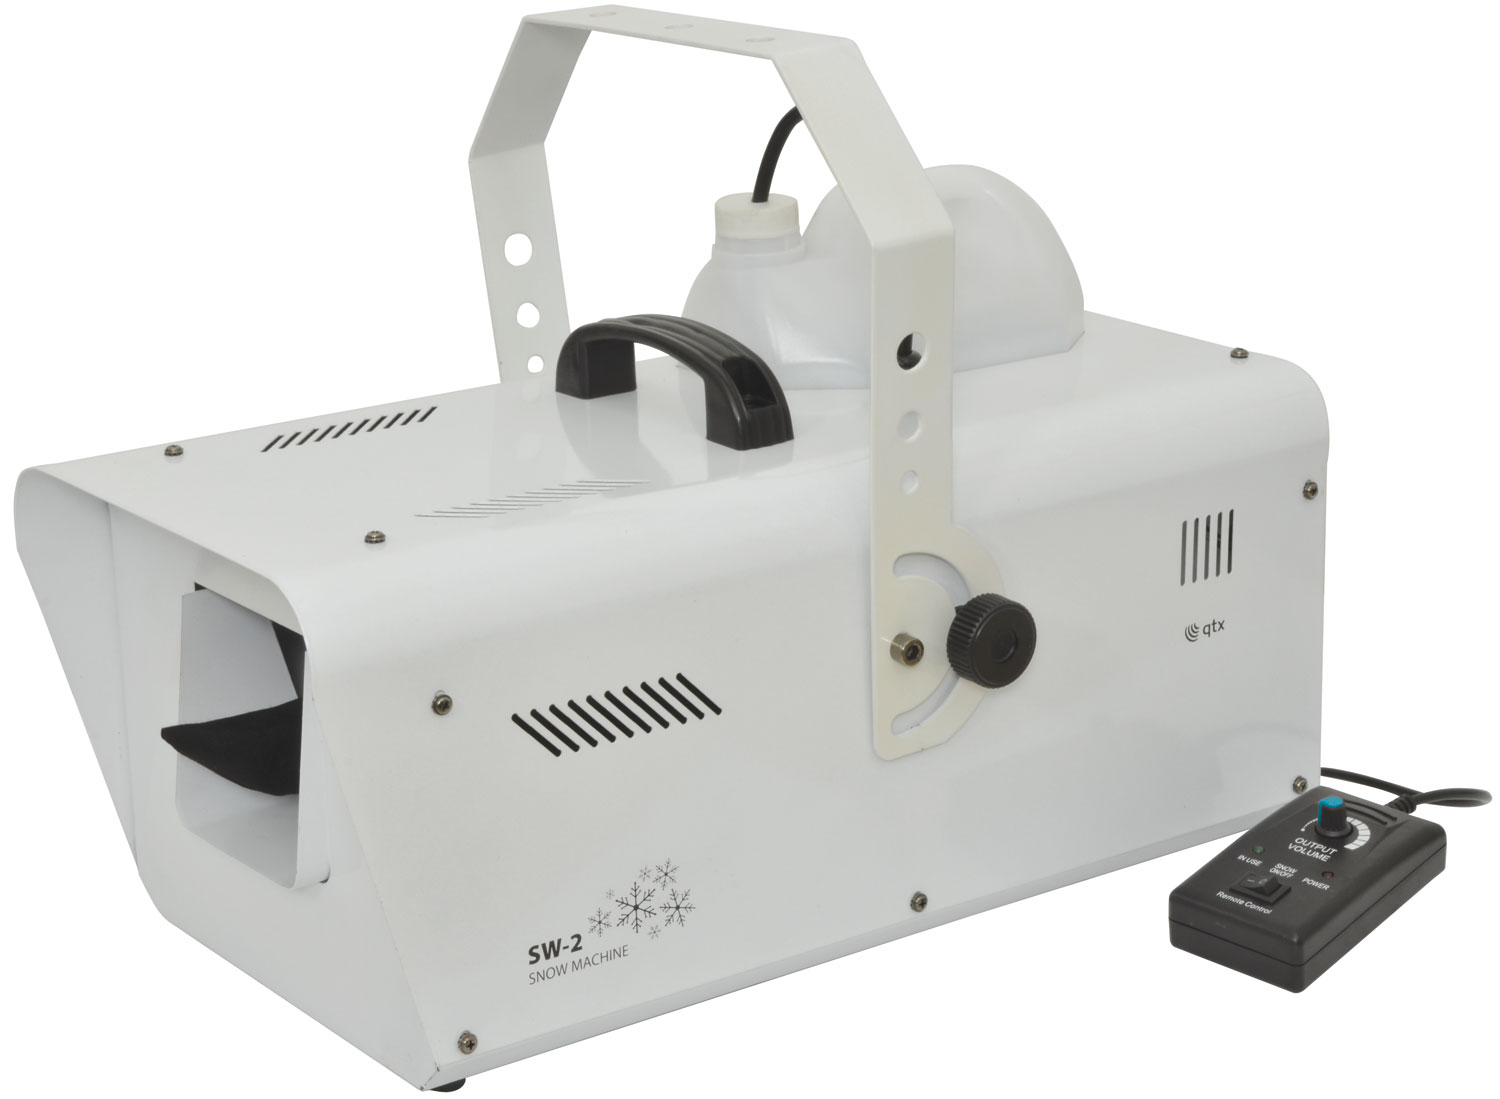 SW-2 snow machine 1200W